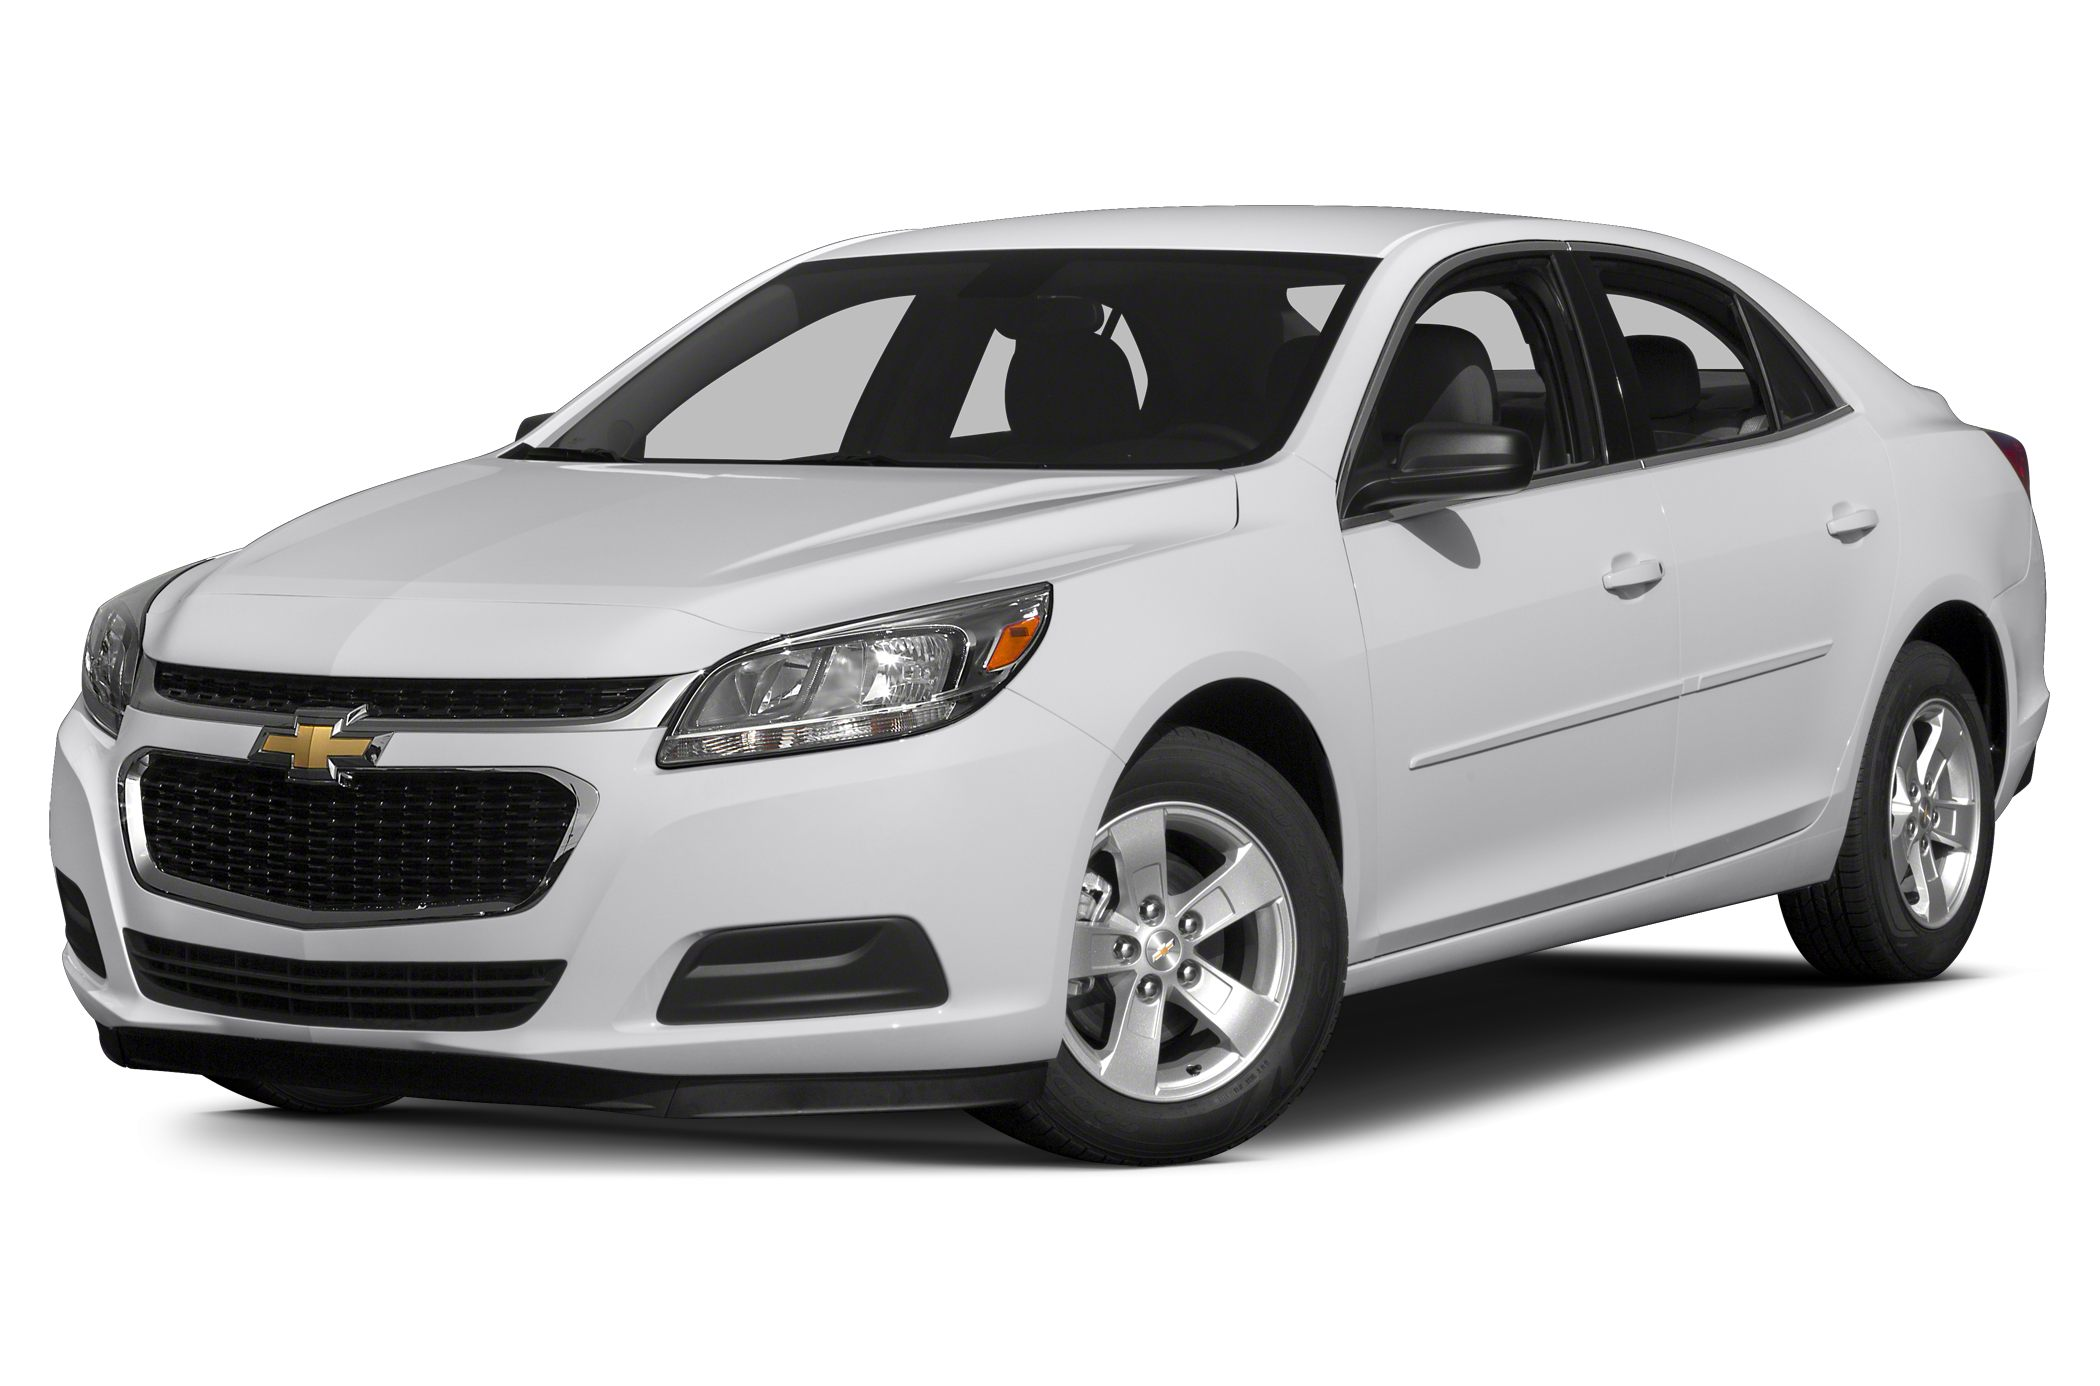 2015 Chevrolet Malibu 1LT Sedan for sale in Westfield for $24,560 with 0 miles